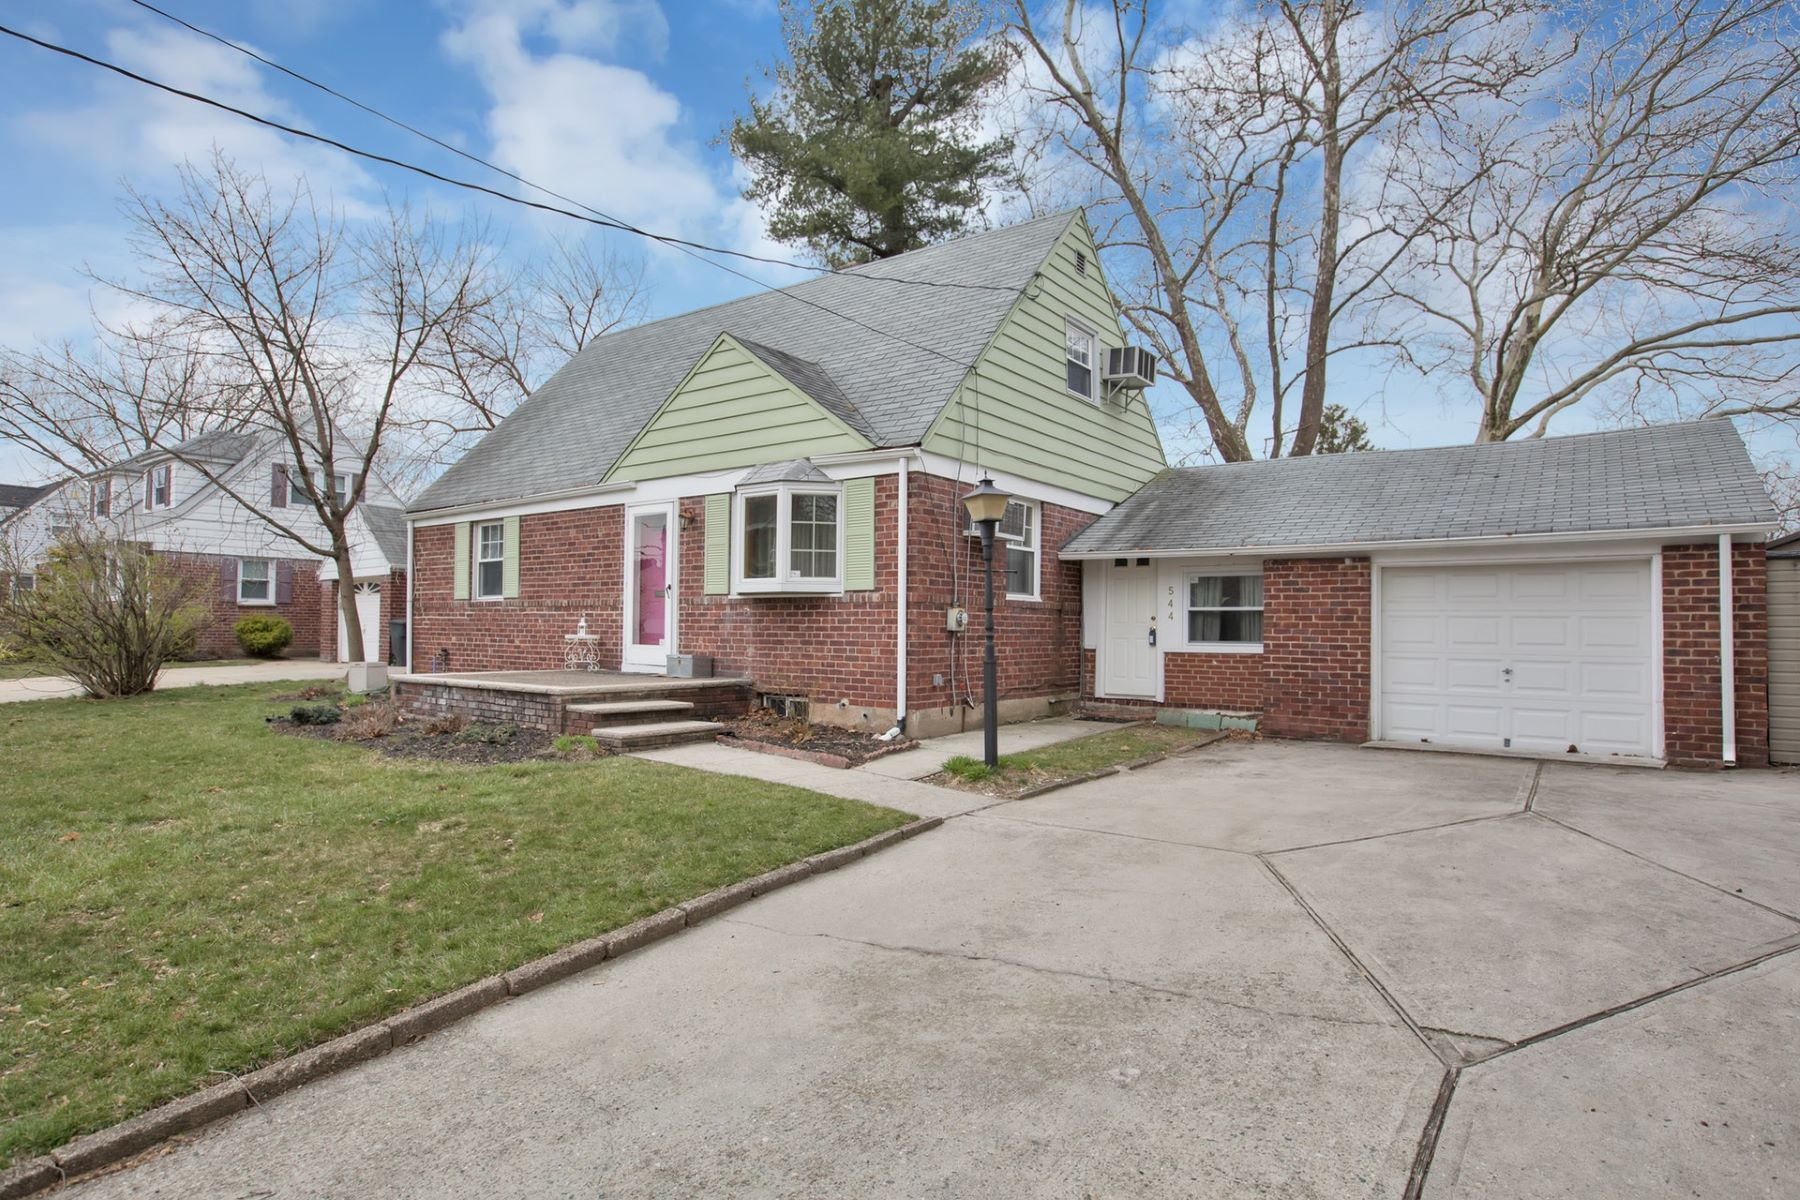 Single Family Home for Sale at Updated Home! 544 Ryeside Ave, New Milford, New Jersey 07646 United States